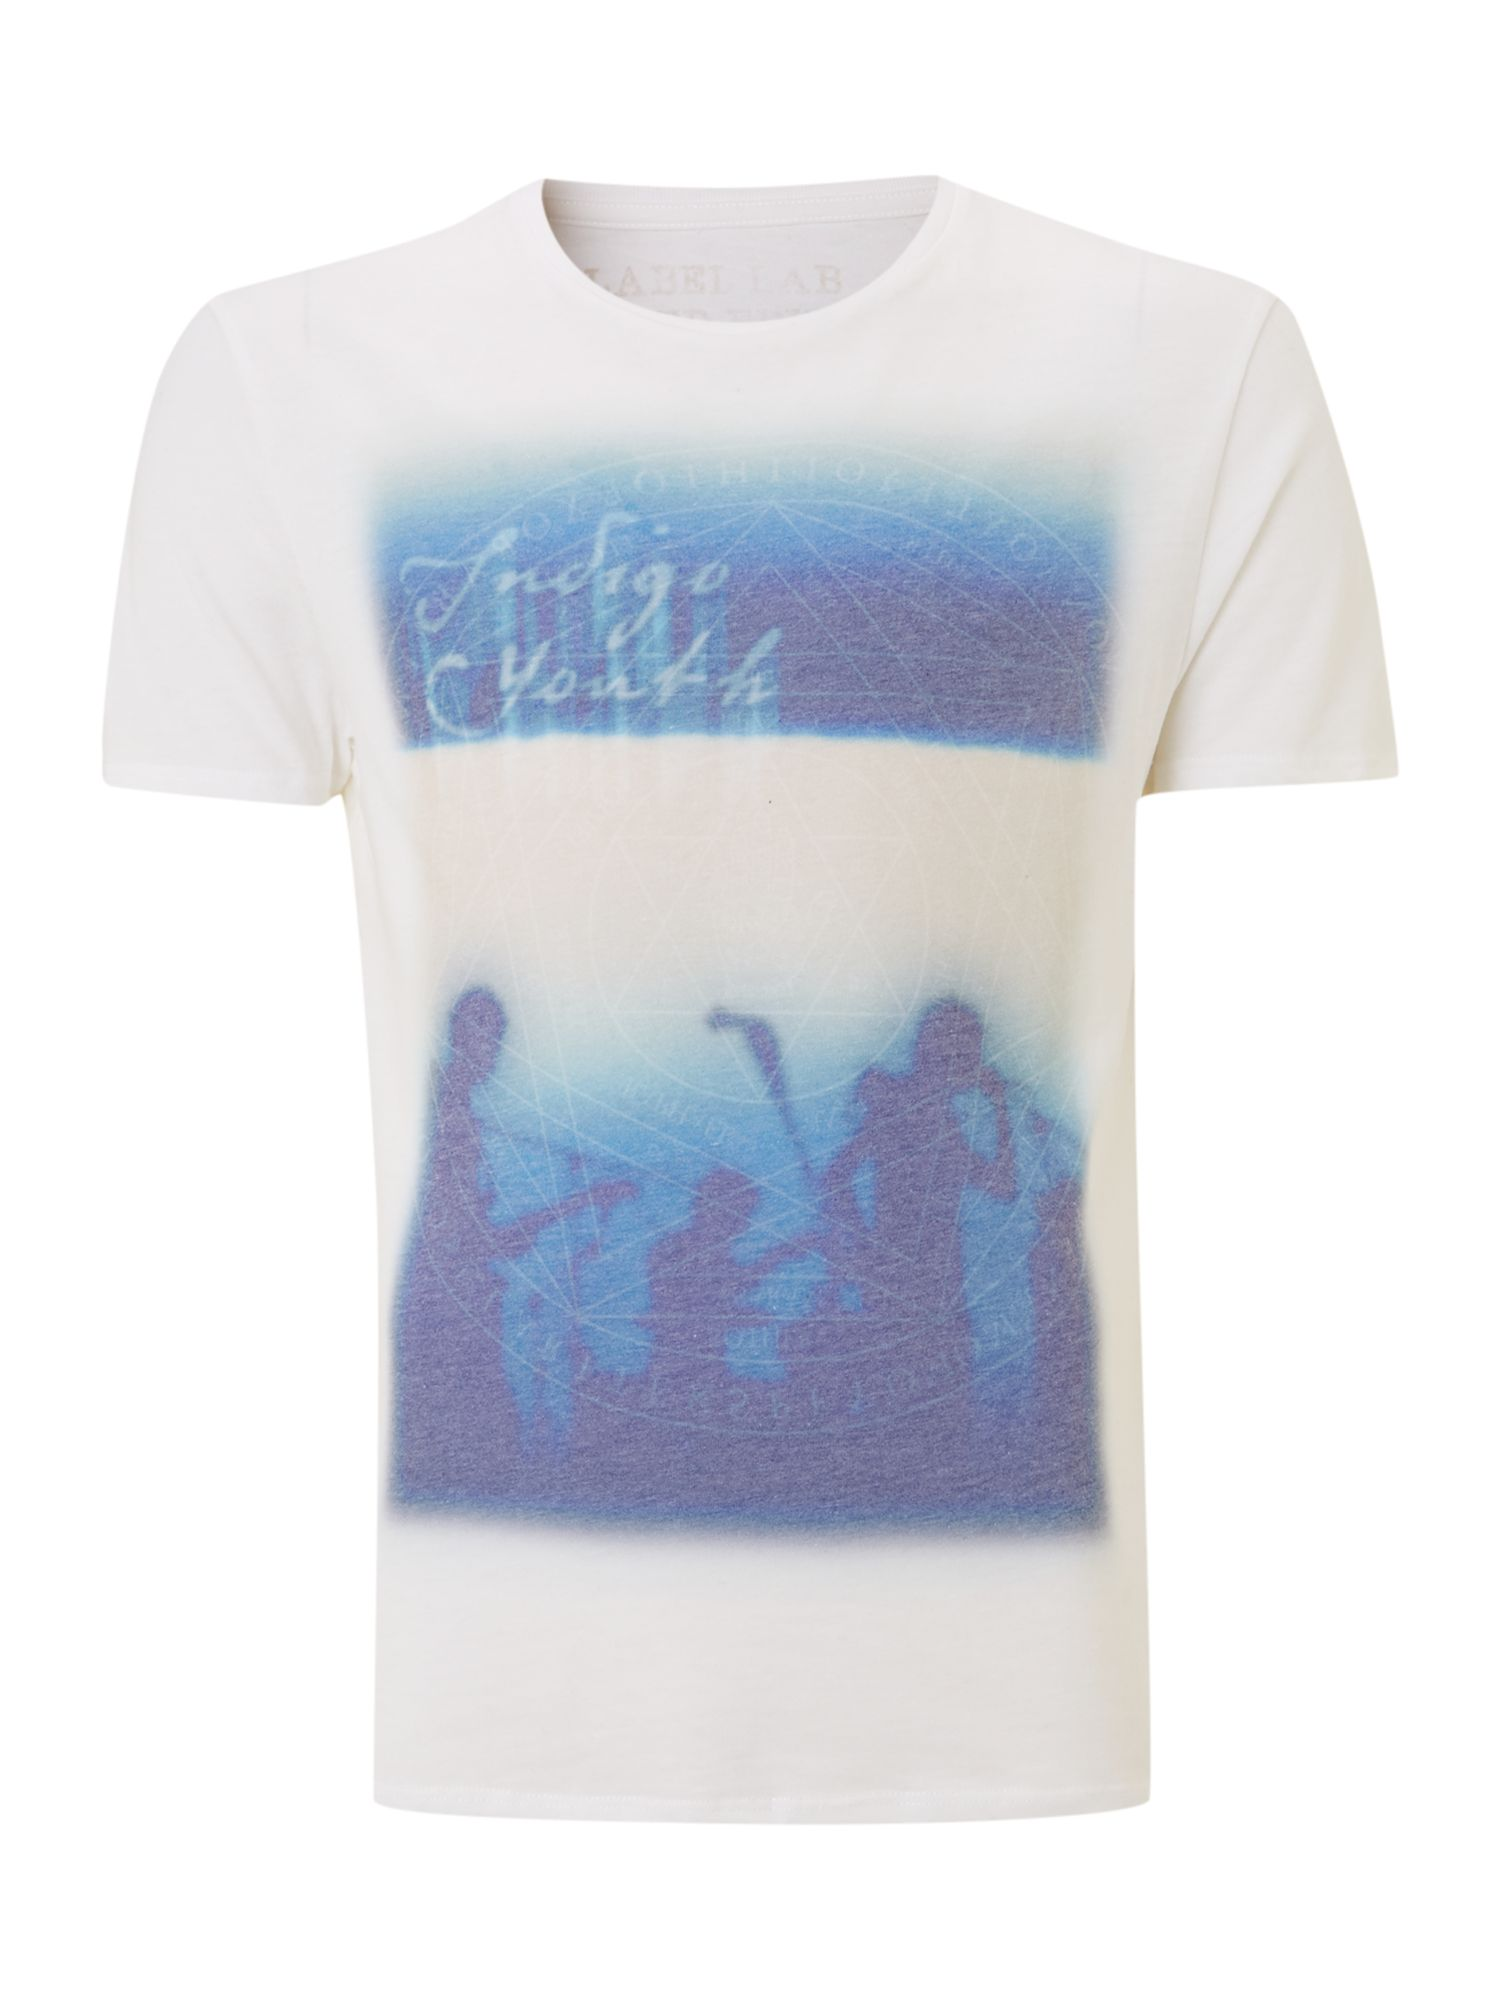 Indigo youth graphic t-shirt